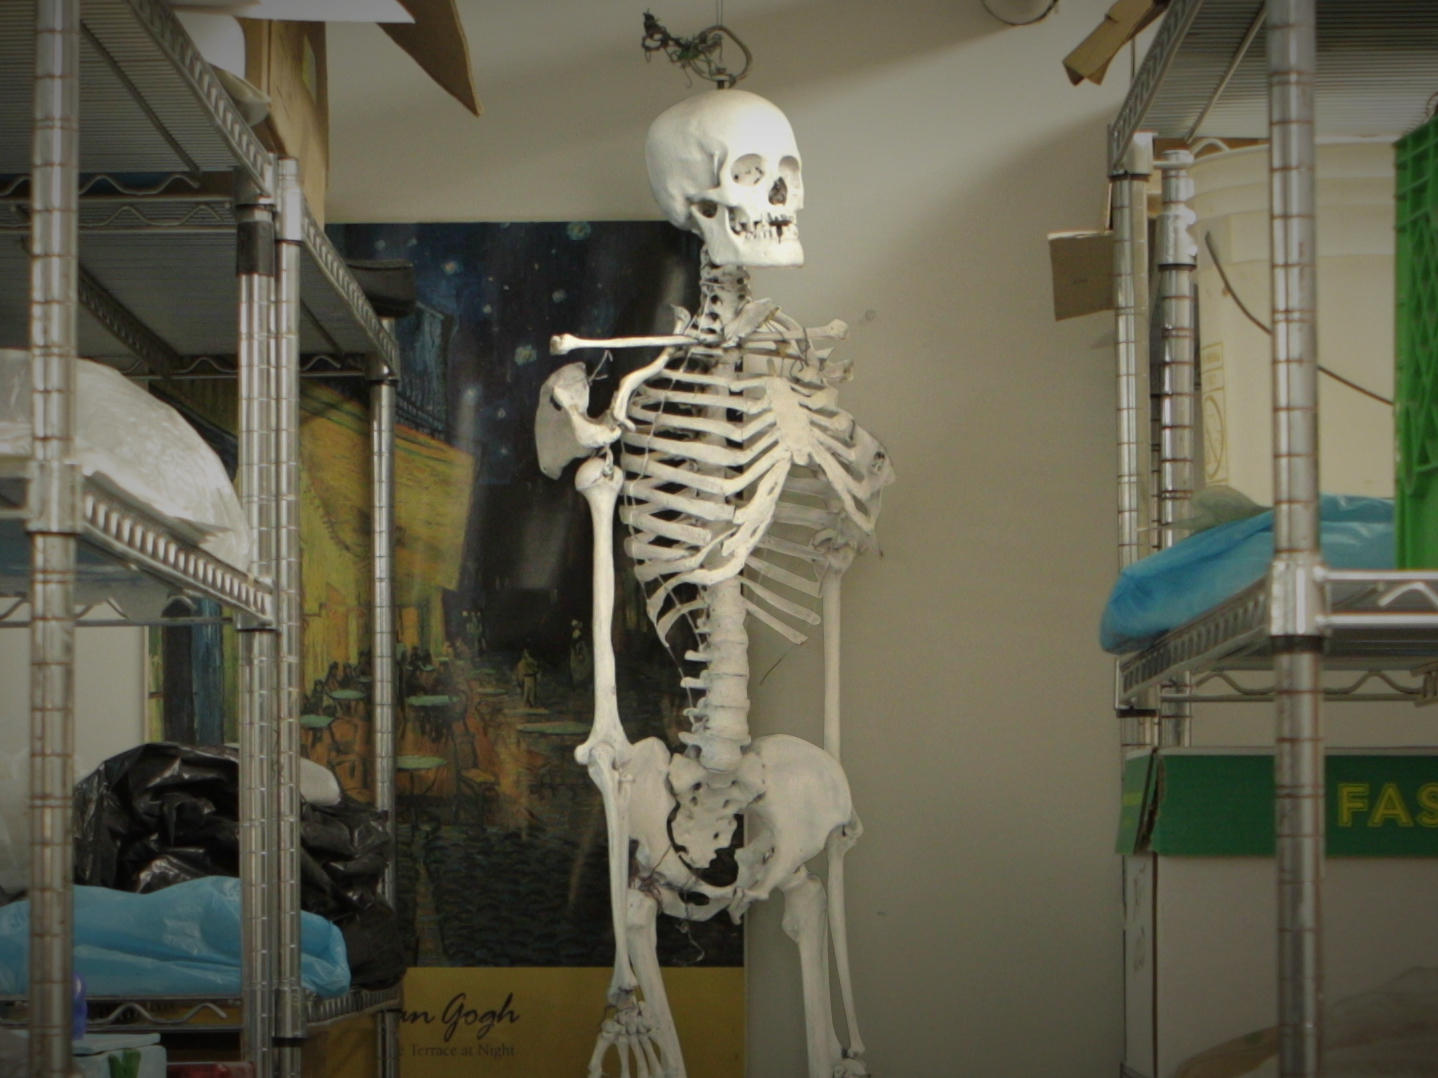 Classroom Skeleton Whose Bones Are These